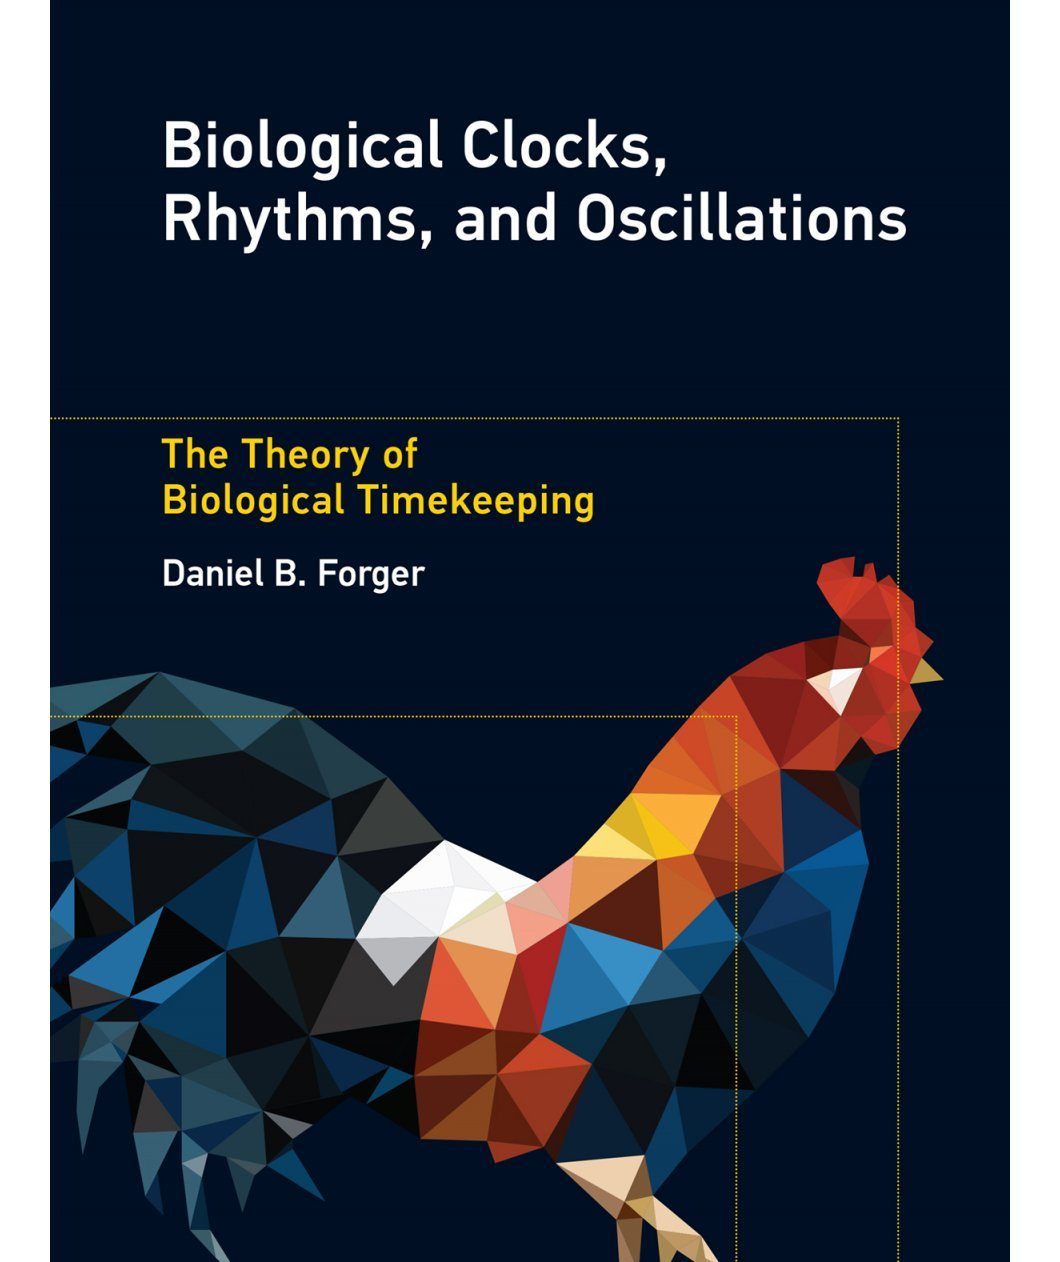 Biological Clocks, Rhythms, and Oscillations